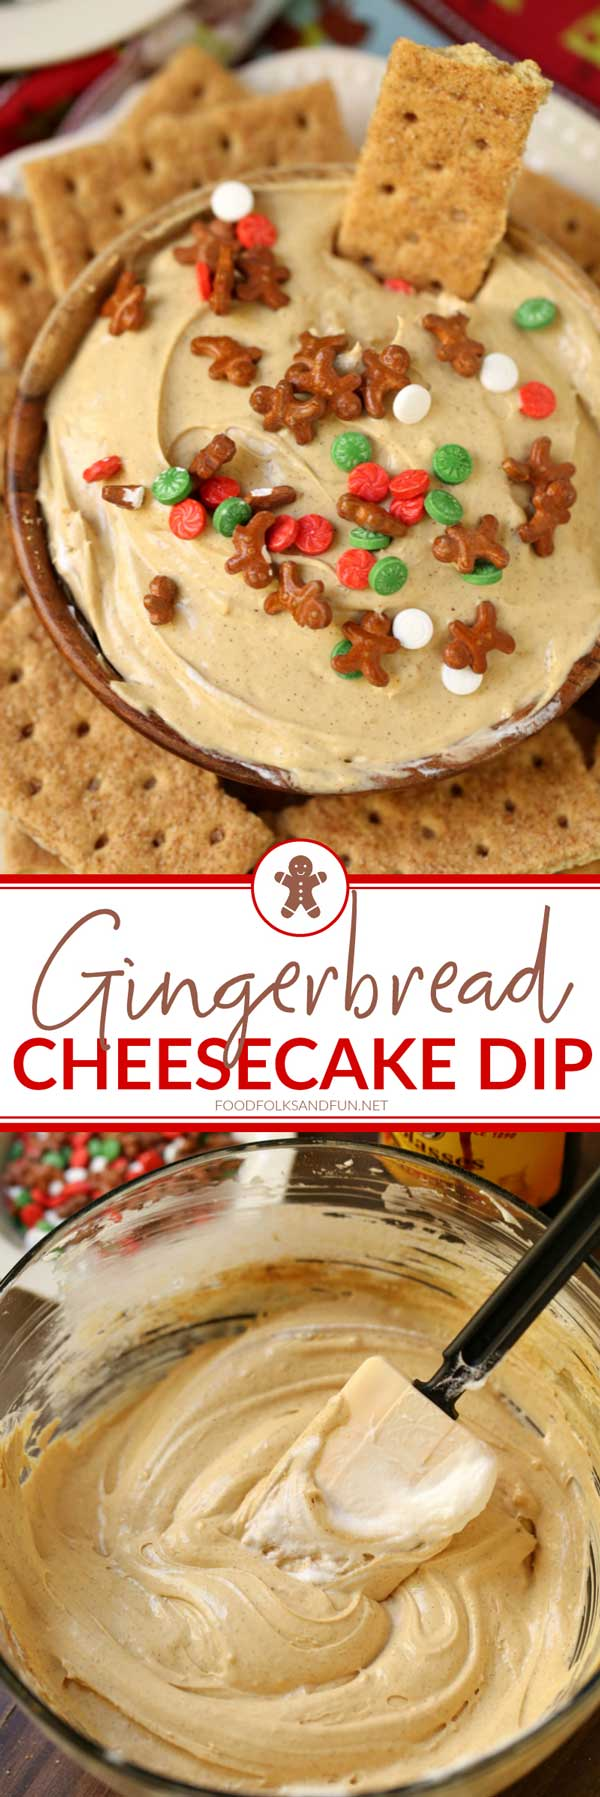 This Gingerbread Cheesecake Dip is always a party favorite for the holidays. Make it for your next holiday get together and I guarantee you'll be the most popular person in the room! via @foodfolksandfun